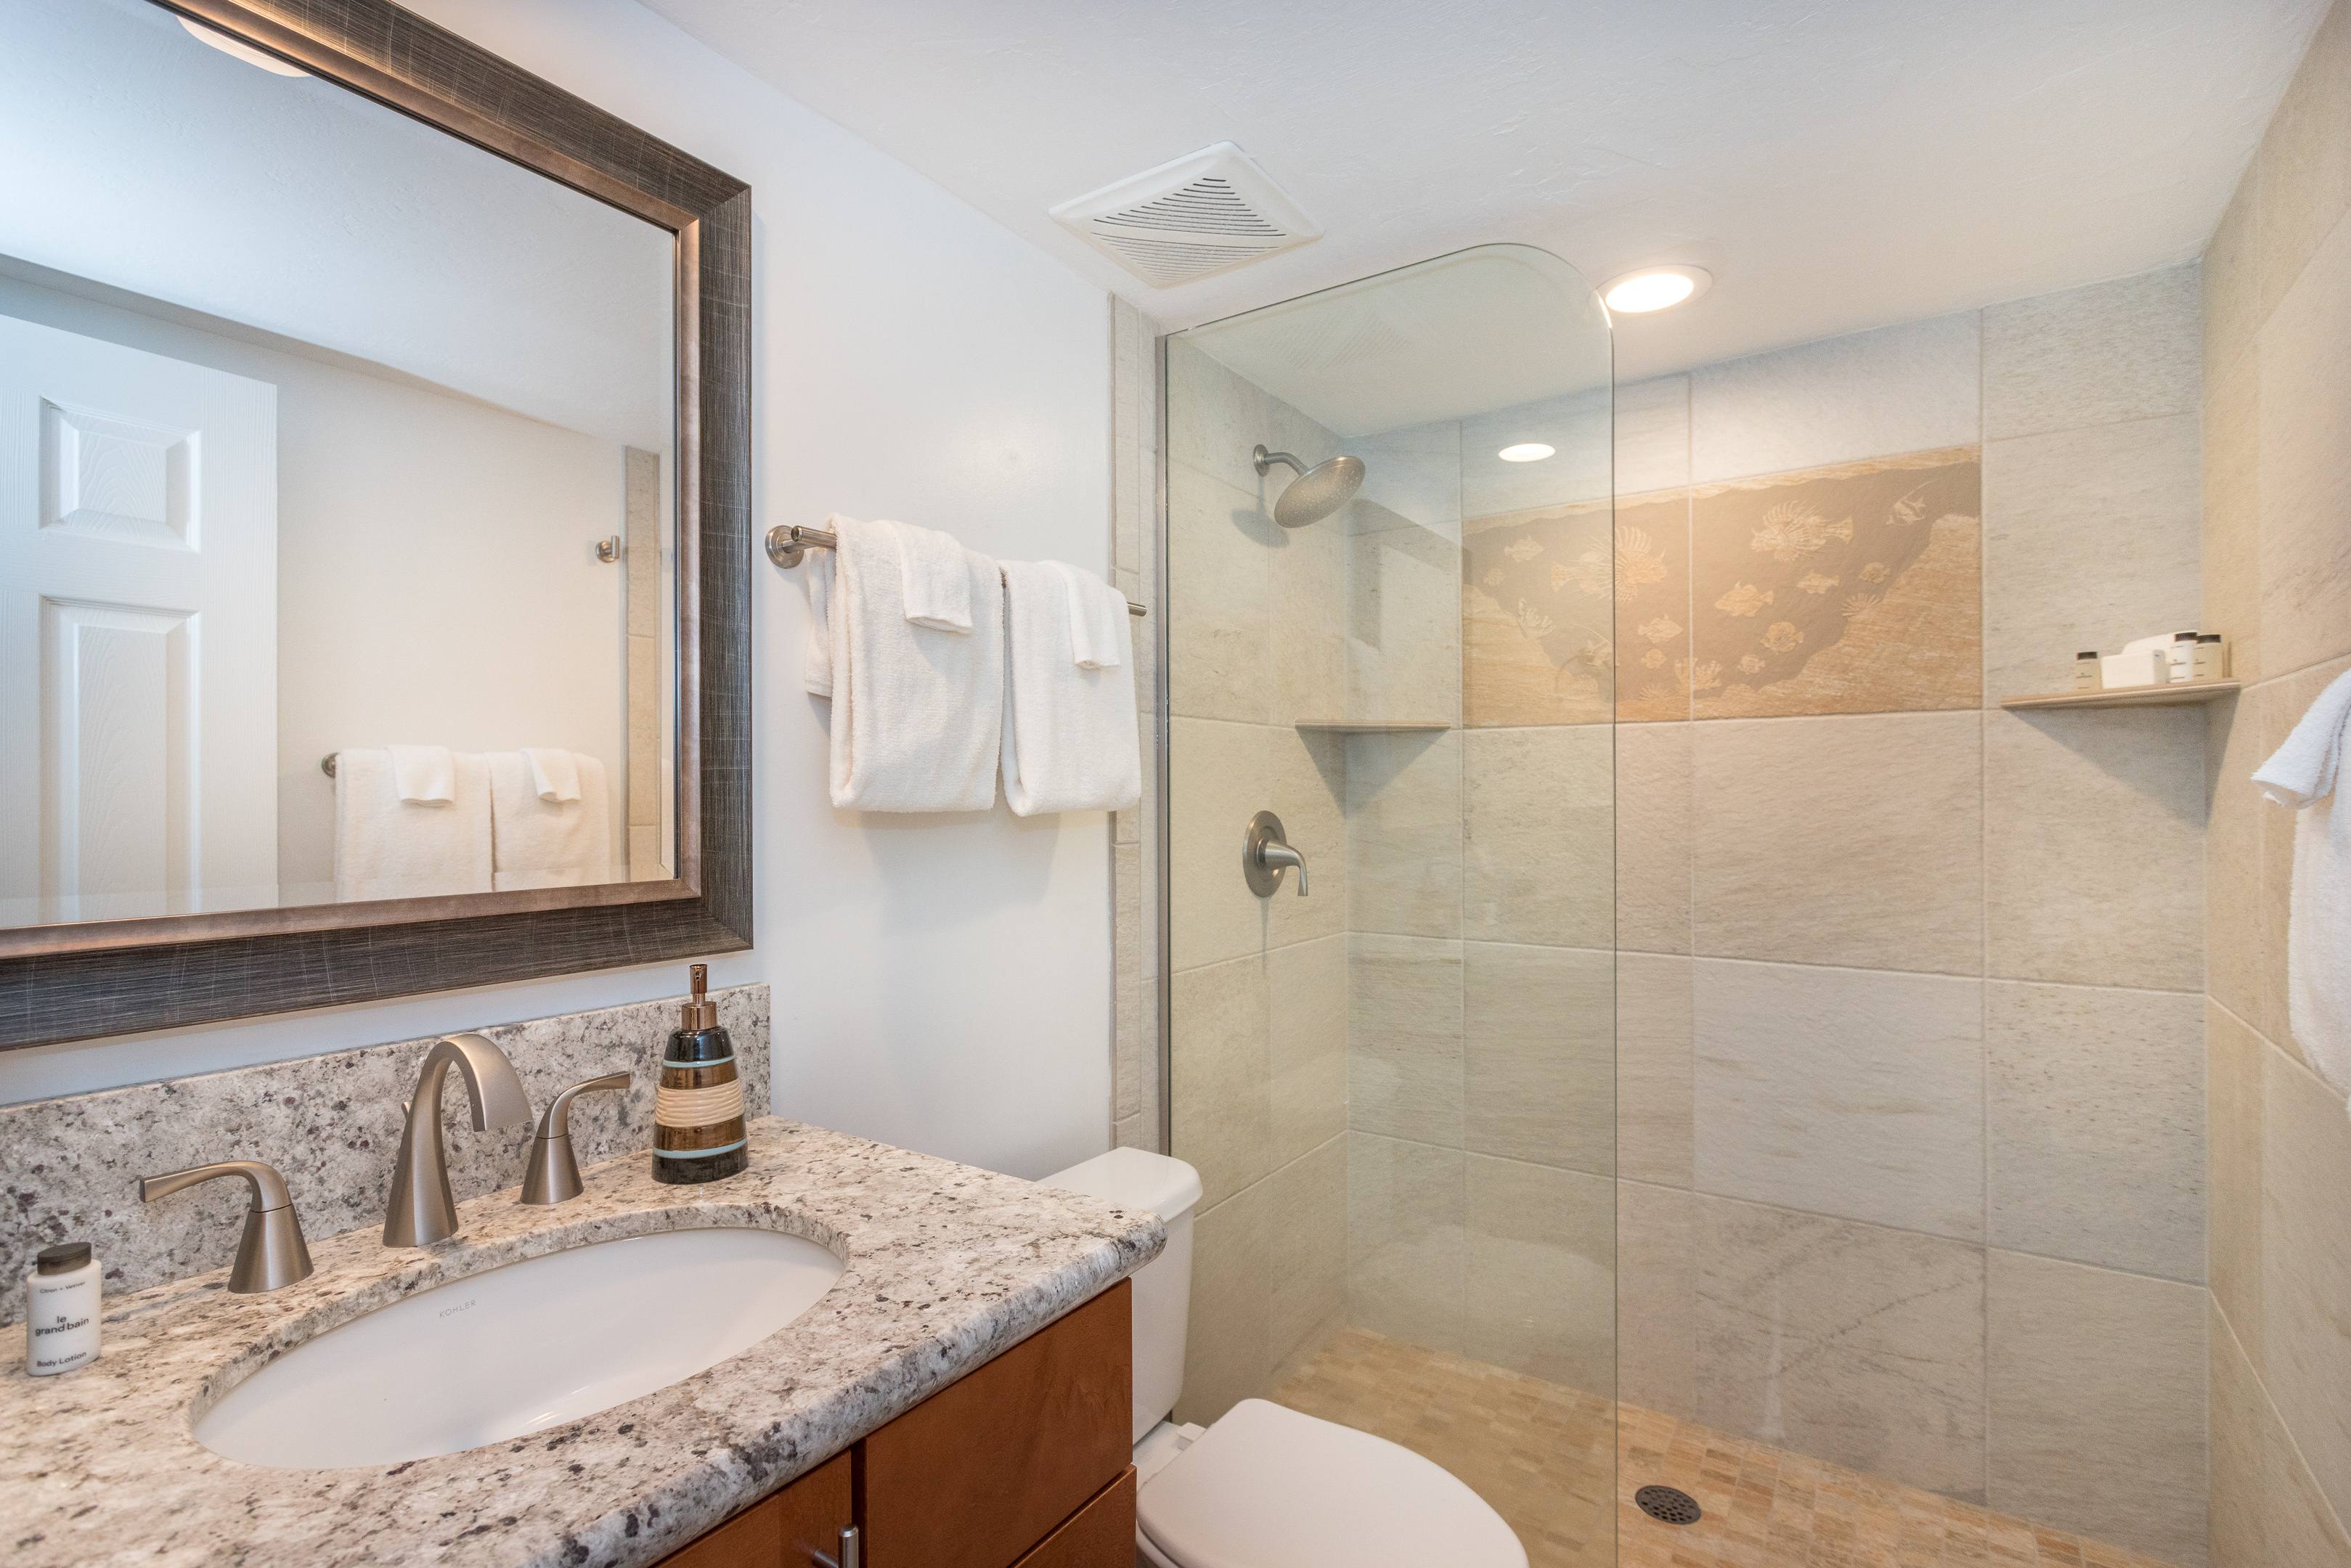 Just across the hall from the second bedroom is a new bathroom with walk in tile shower.